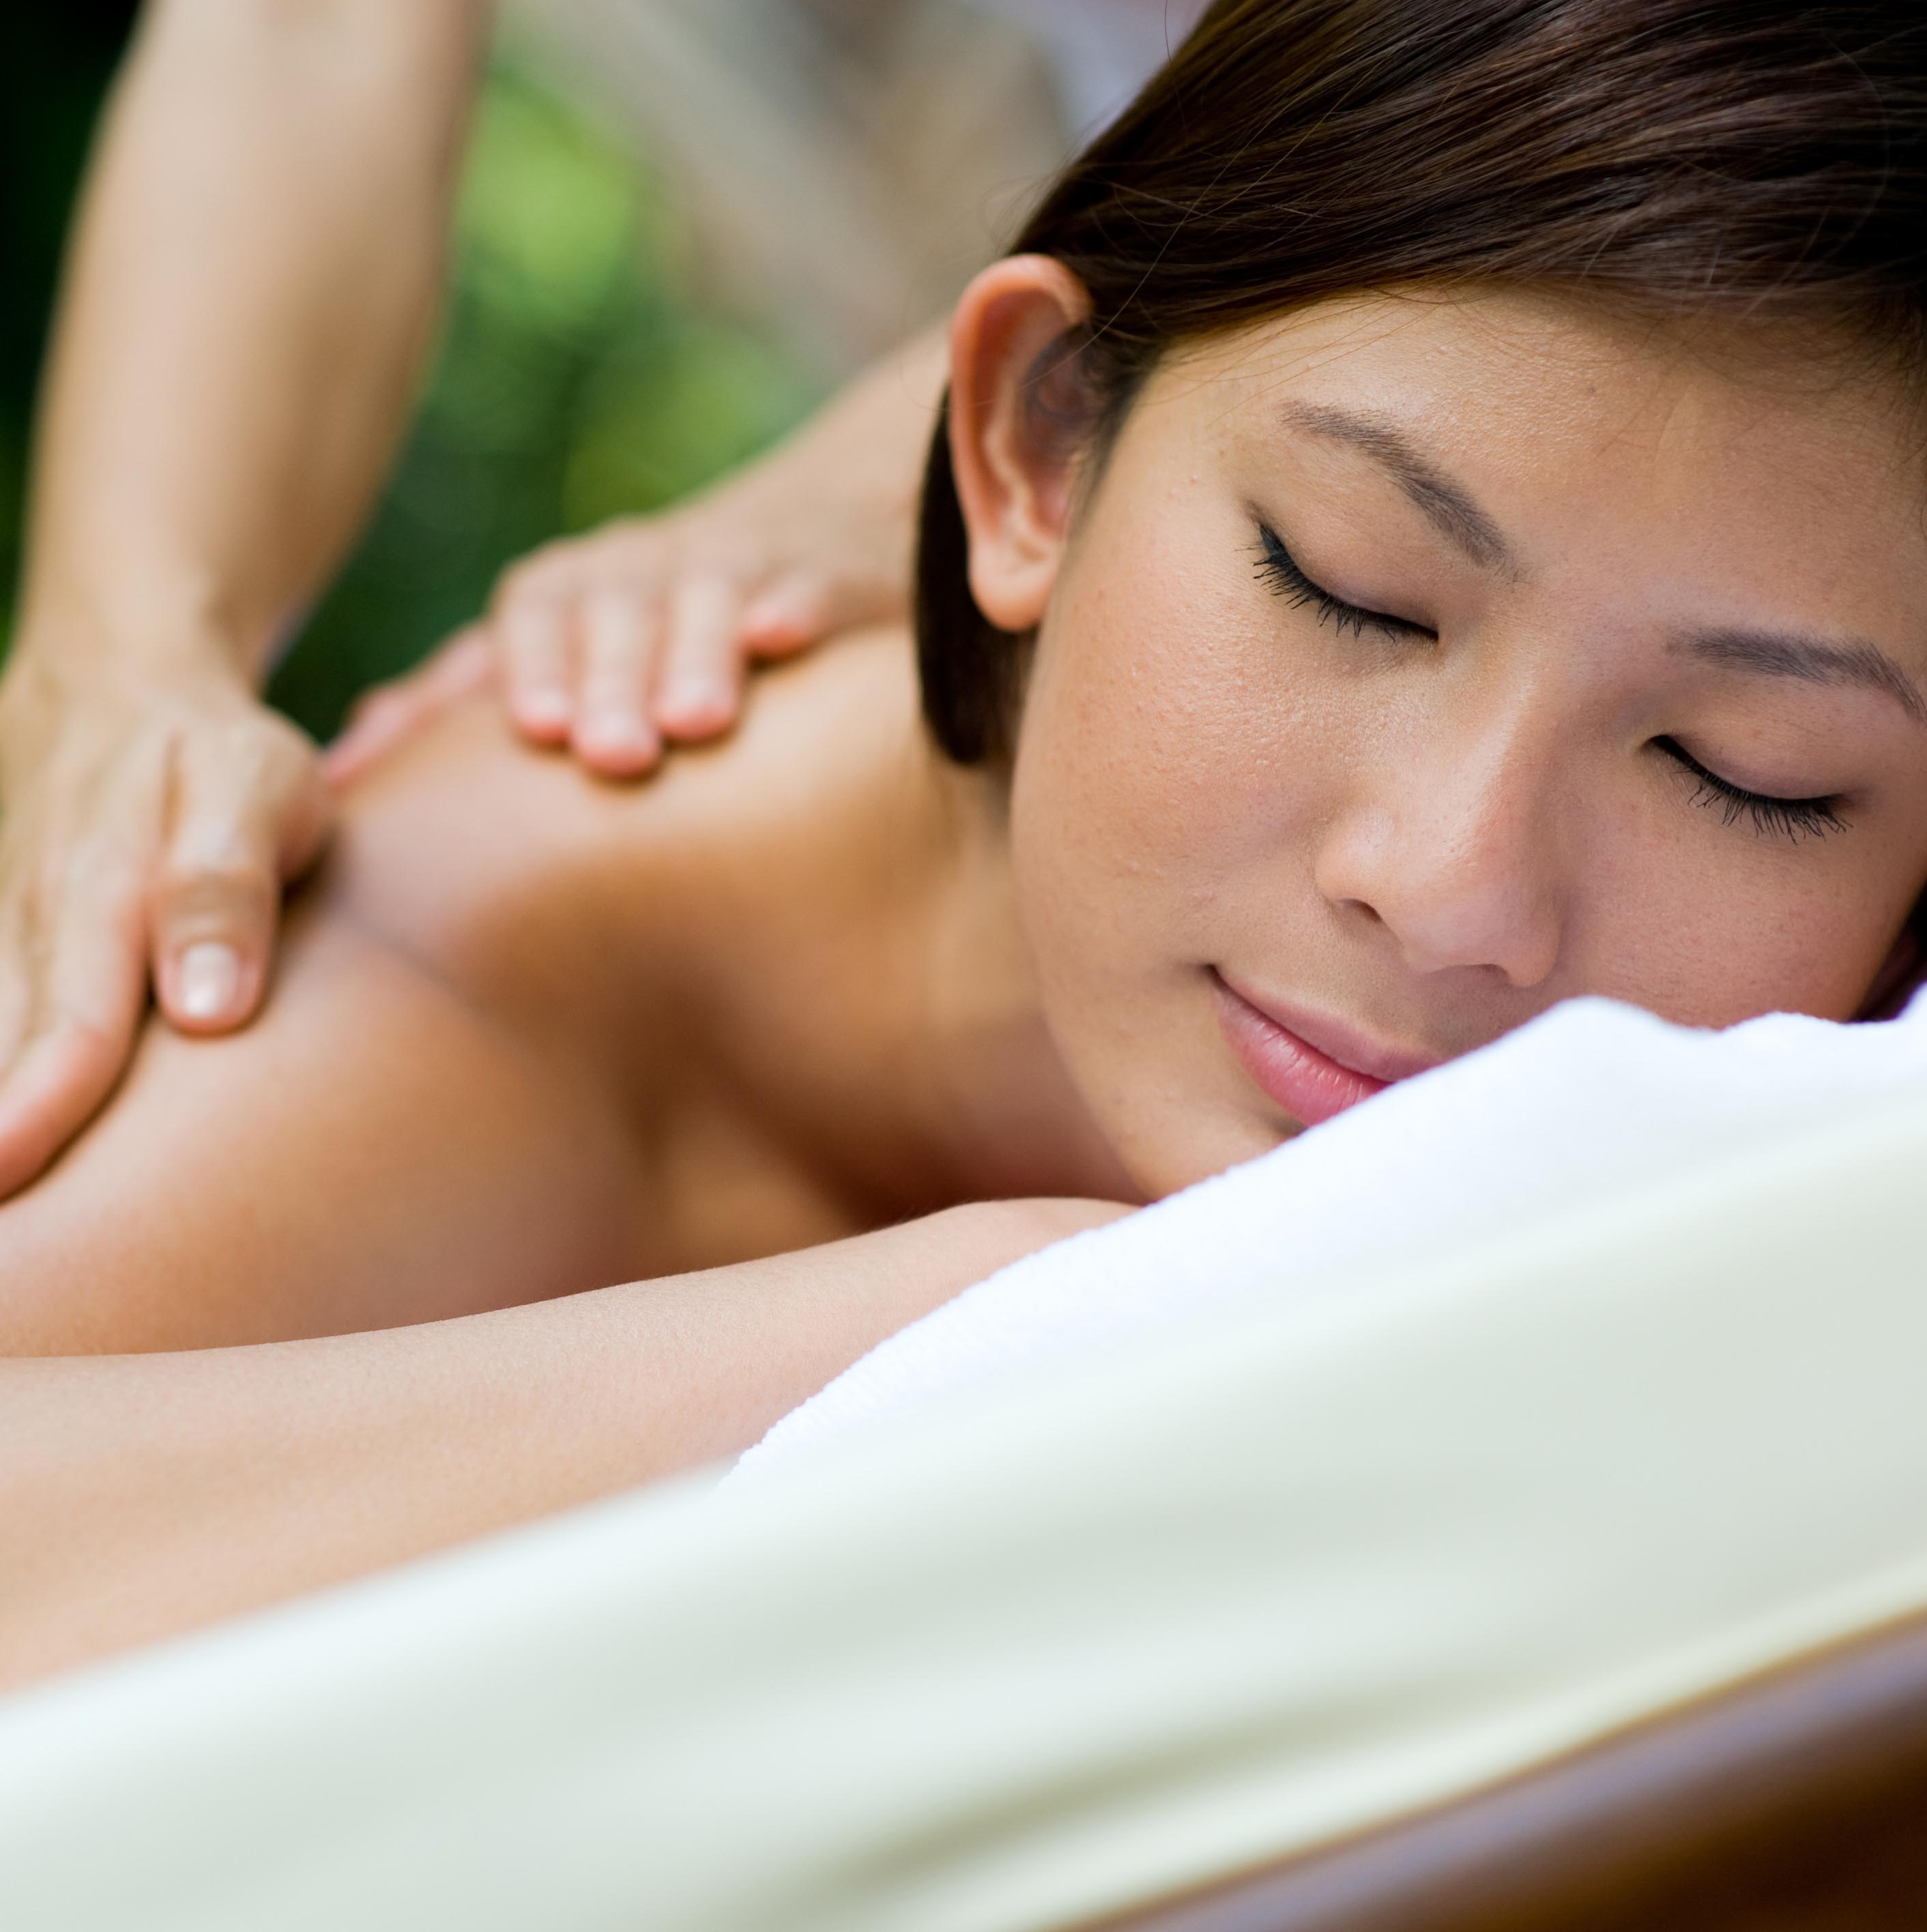 Benefits for Massage Therapists / Body Workers